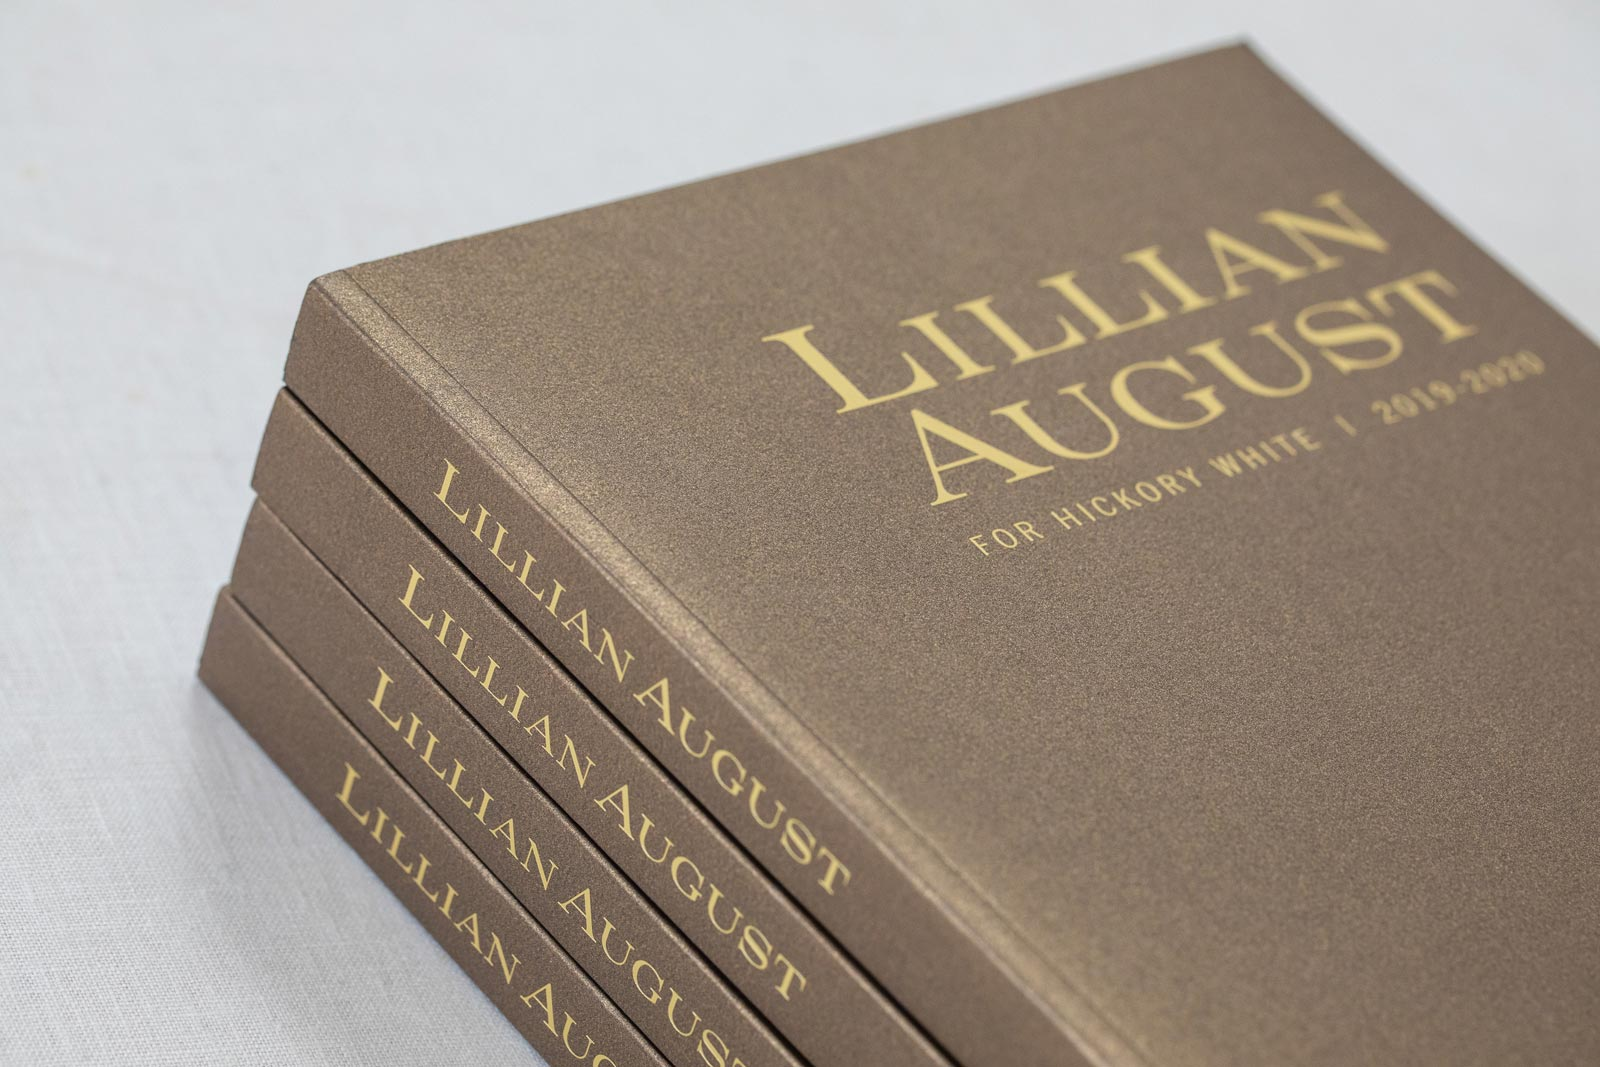 Lillian August Fine Furniture catalog cover in gold metallic paper and gold foil stamped